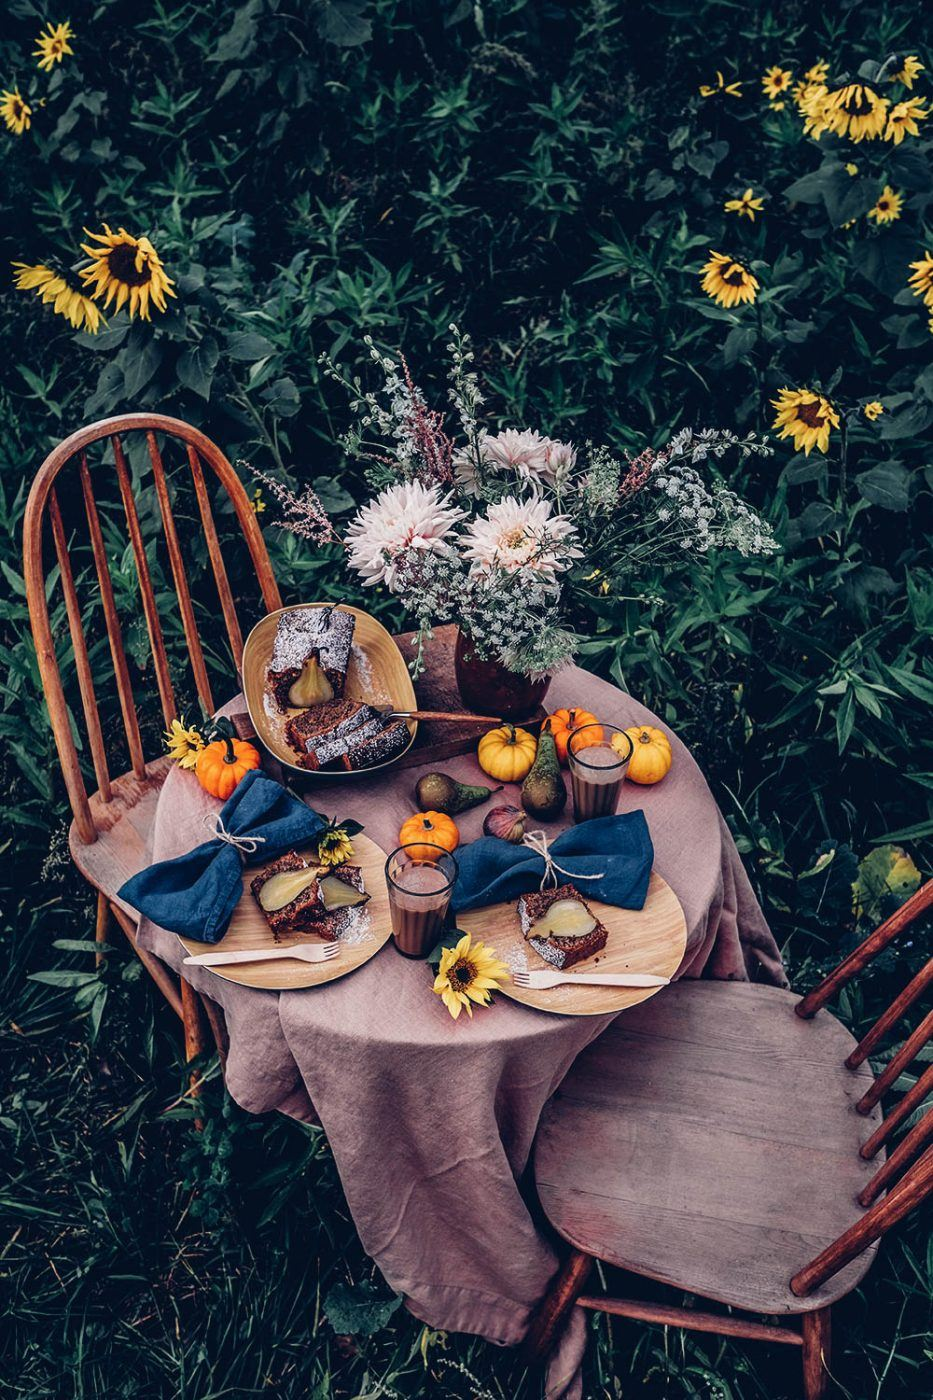 Image for Autumn Picnic in a Sunflower Field